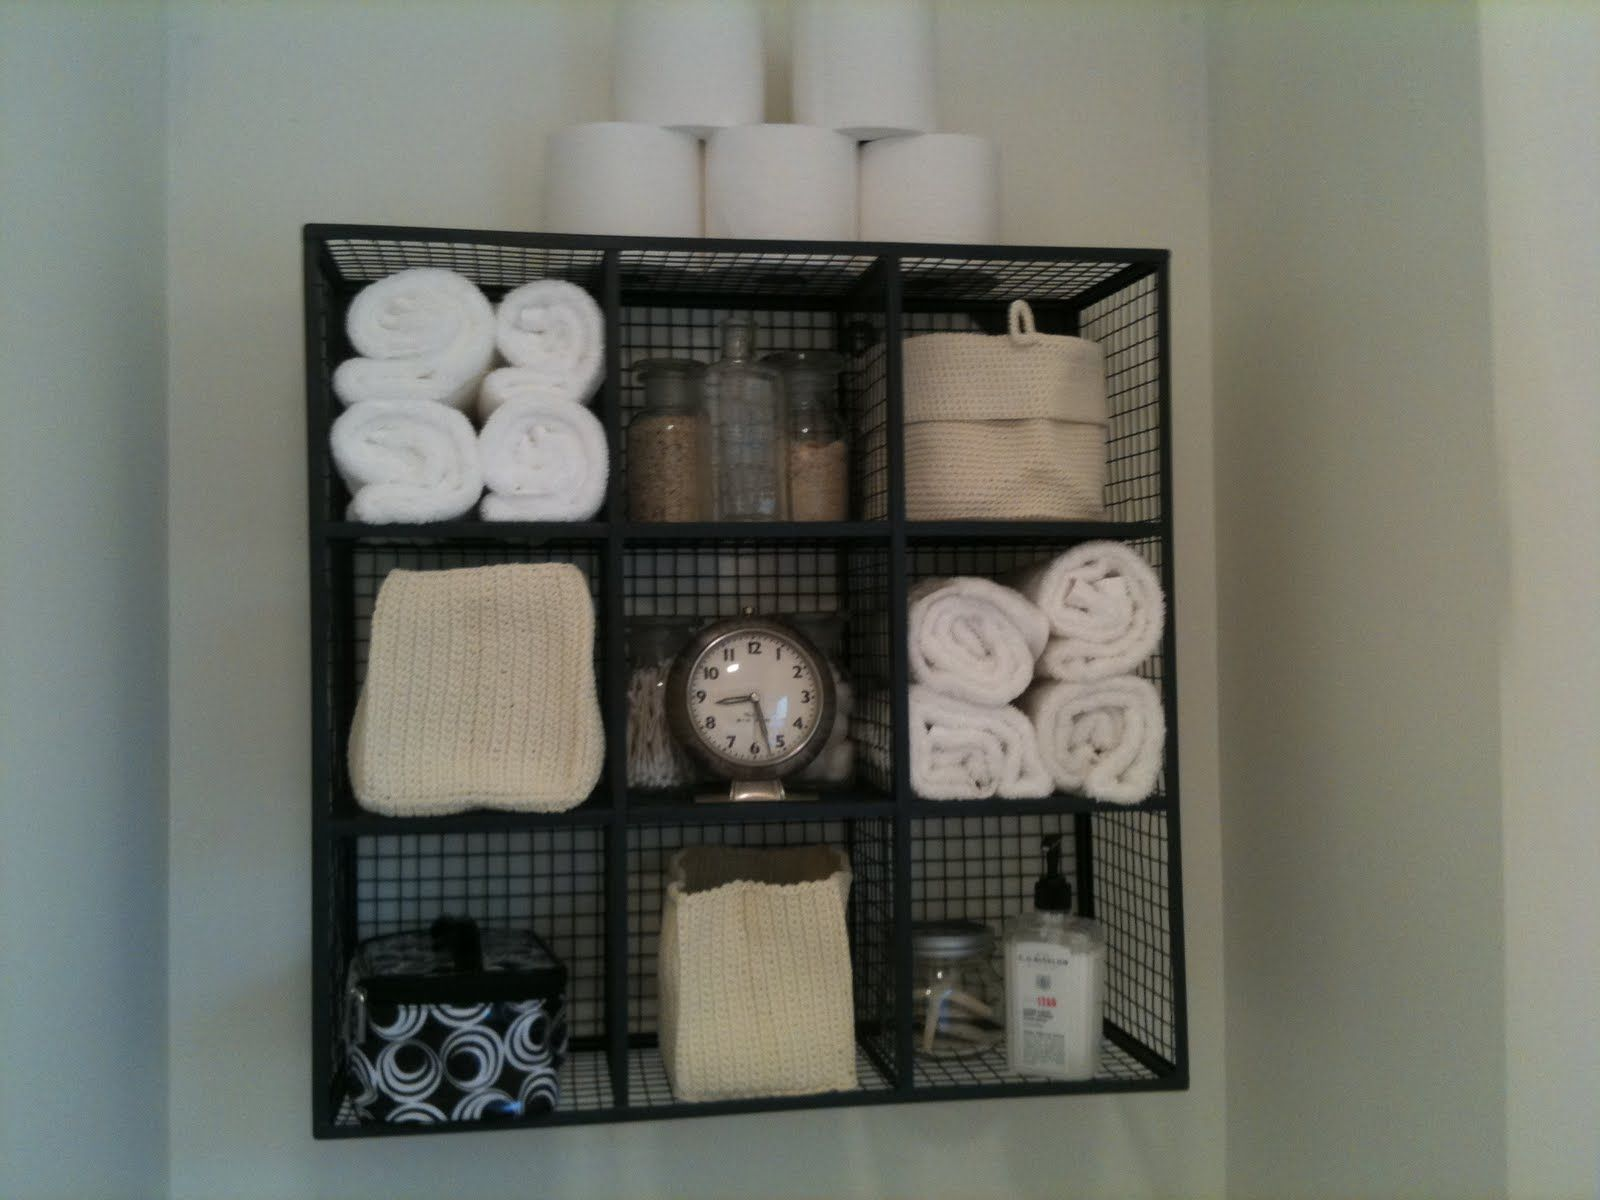 Bathroom wall cabinets ideas - 17 Brilliant Above The Toilet Storage Ideas One Crazy House